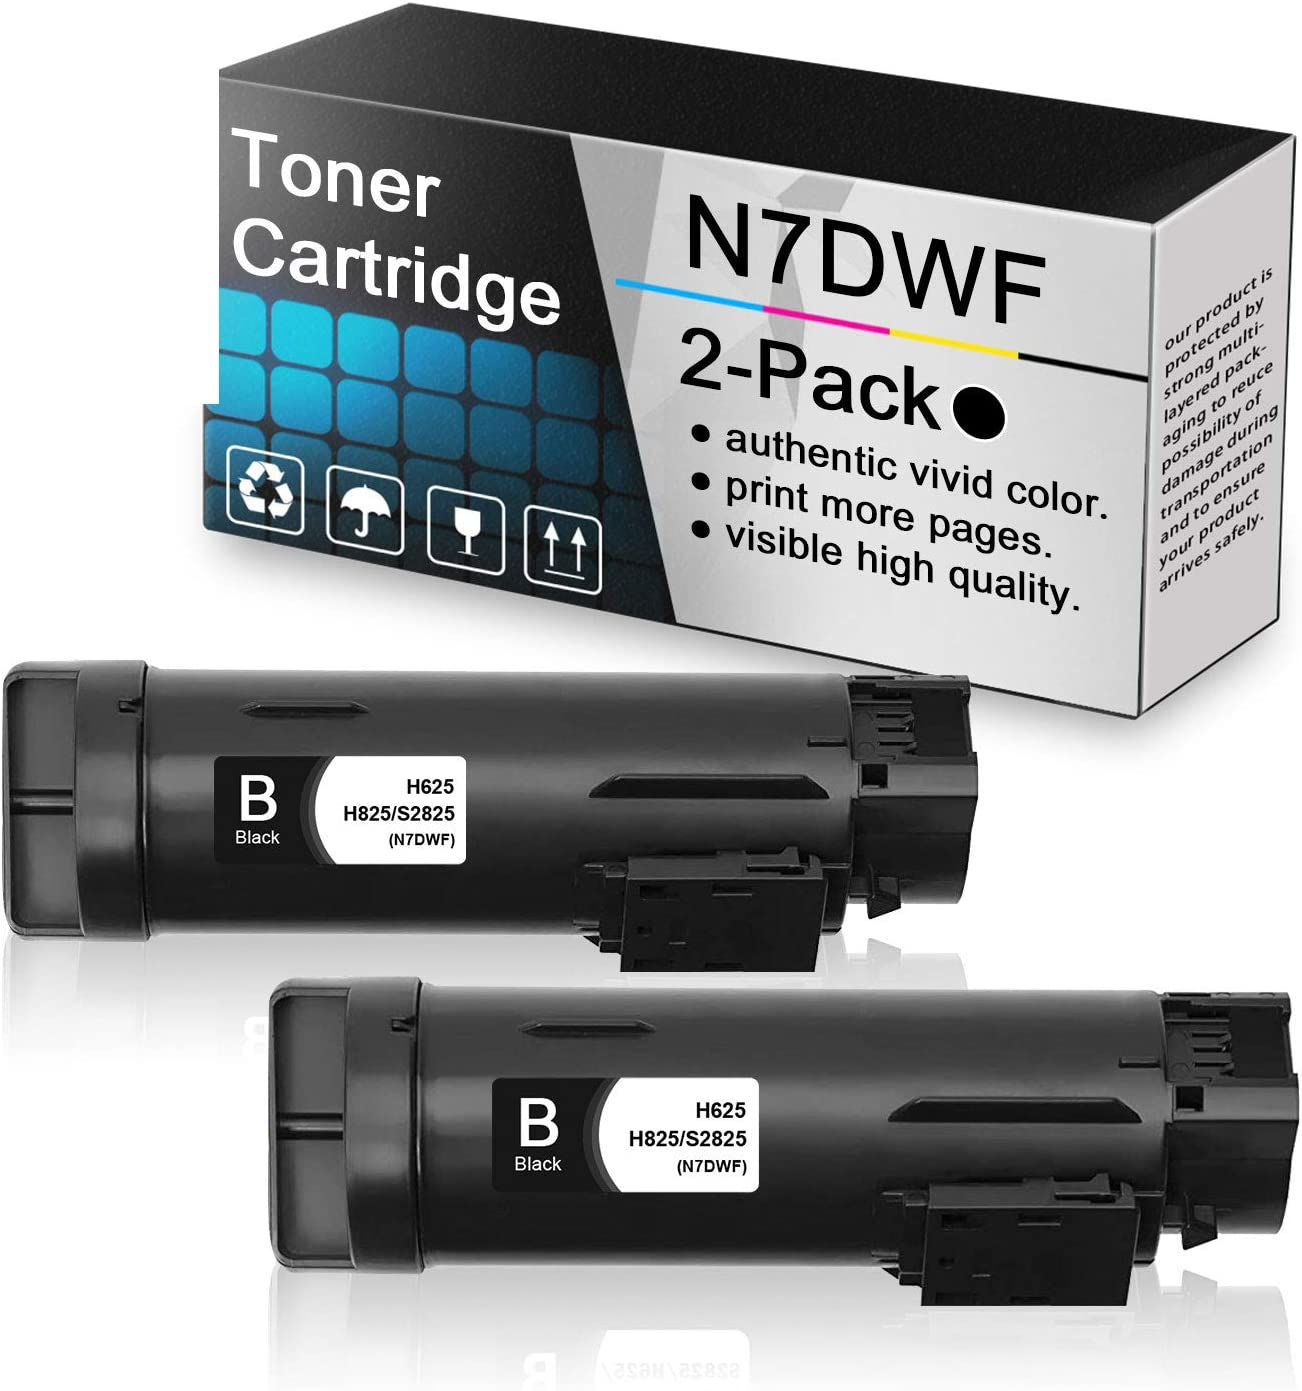 2-Pack Black N7DWF Compatible Toner Cartridge Replacement for Dell h625 to use with Dell H625 H625cdw H825 H825cdw S2825cdn S2825 Printers.